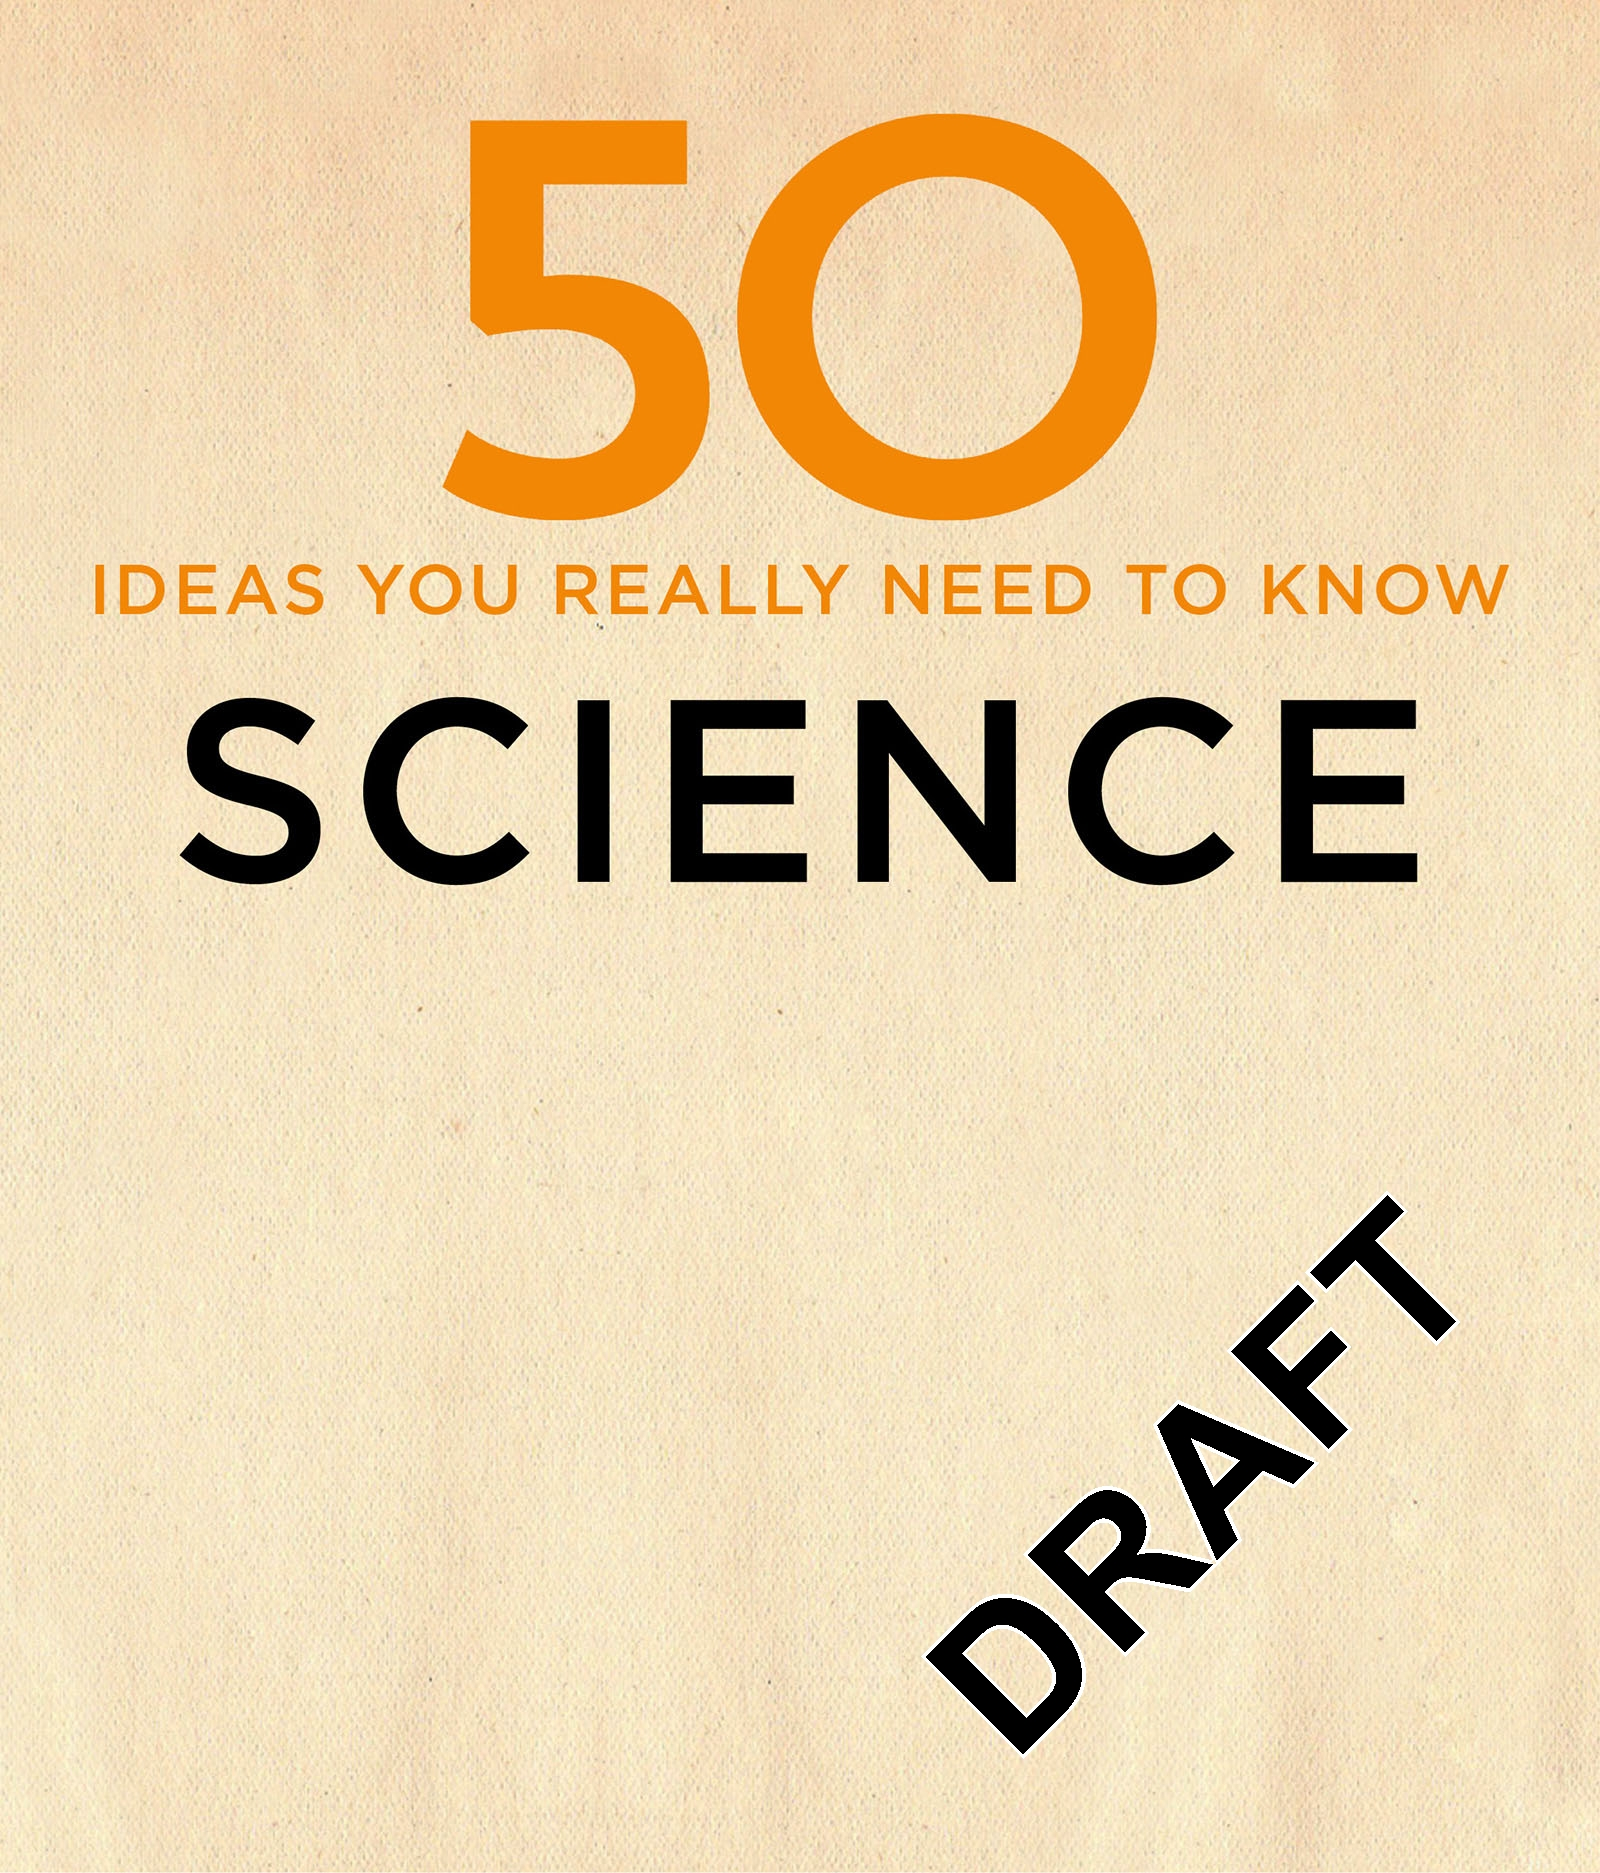 50 Science Ideas You Really Need to Know by Gail Dixon, ISBN: 9781784296155